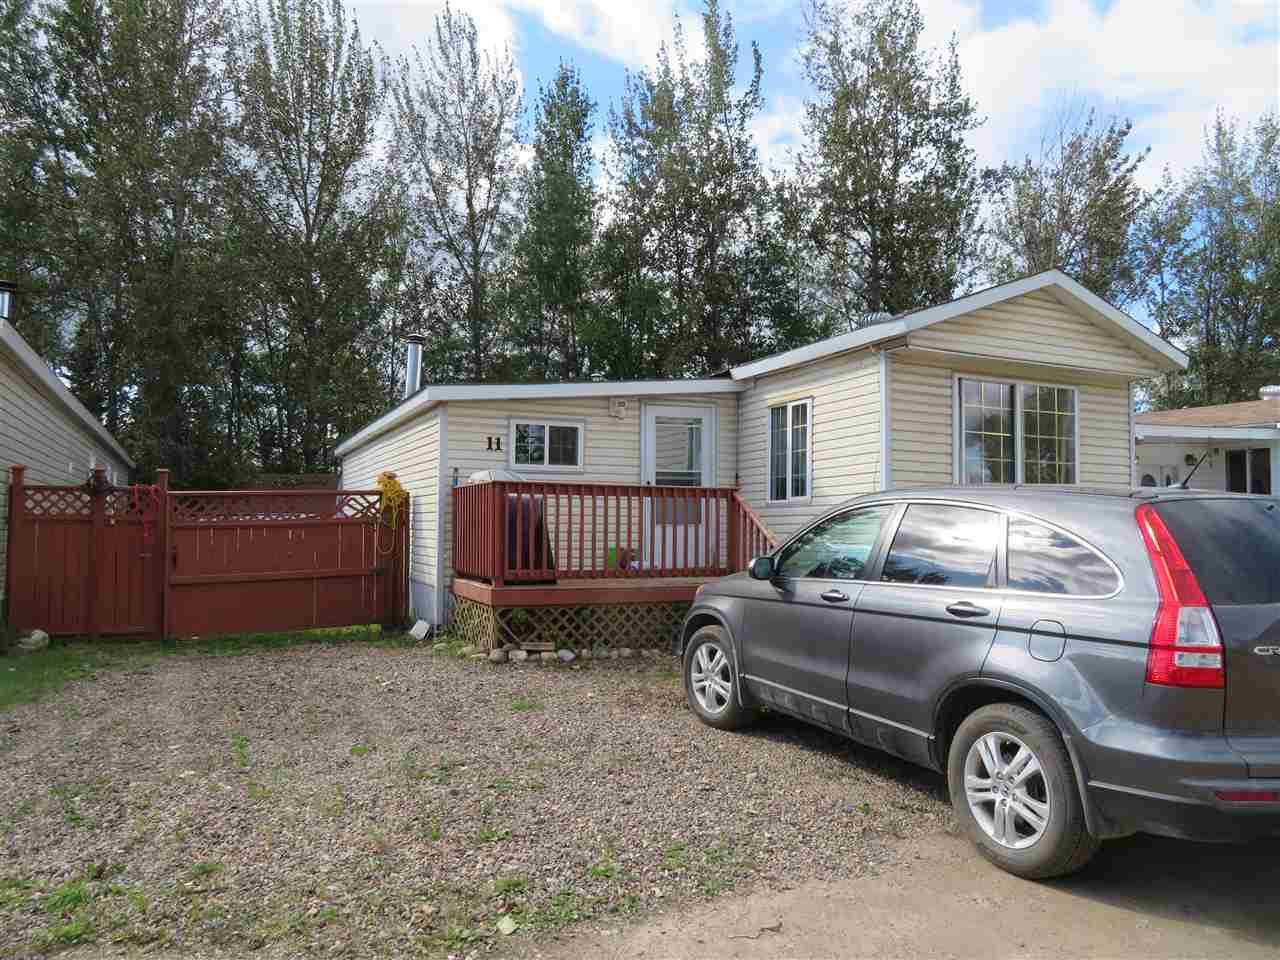 "Main Photo: 11 2963 KLAHANNIE Drive in Fort Nelson: Fort Nelson -Town Manufactured Home for sale in ""KLAHANNIE TRAILER PARK"" (Fort Nelson (Zone 64))  : MLS®# R2485074"